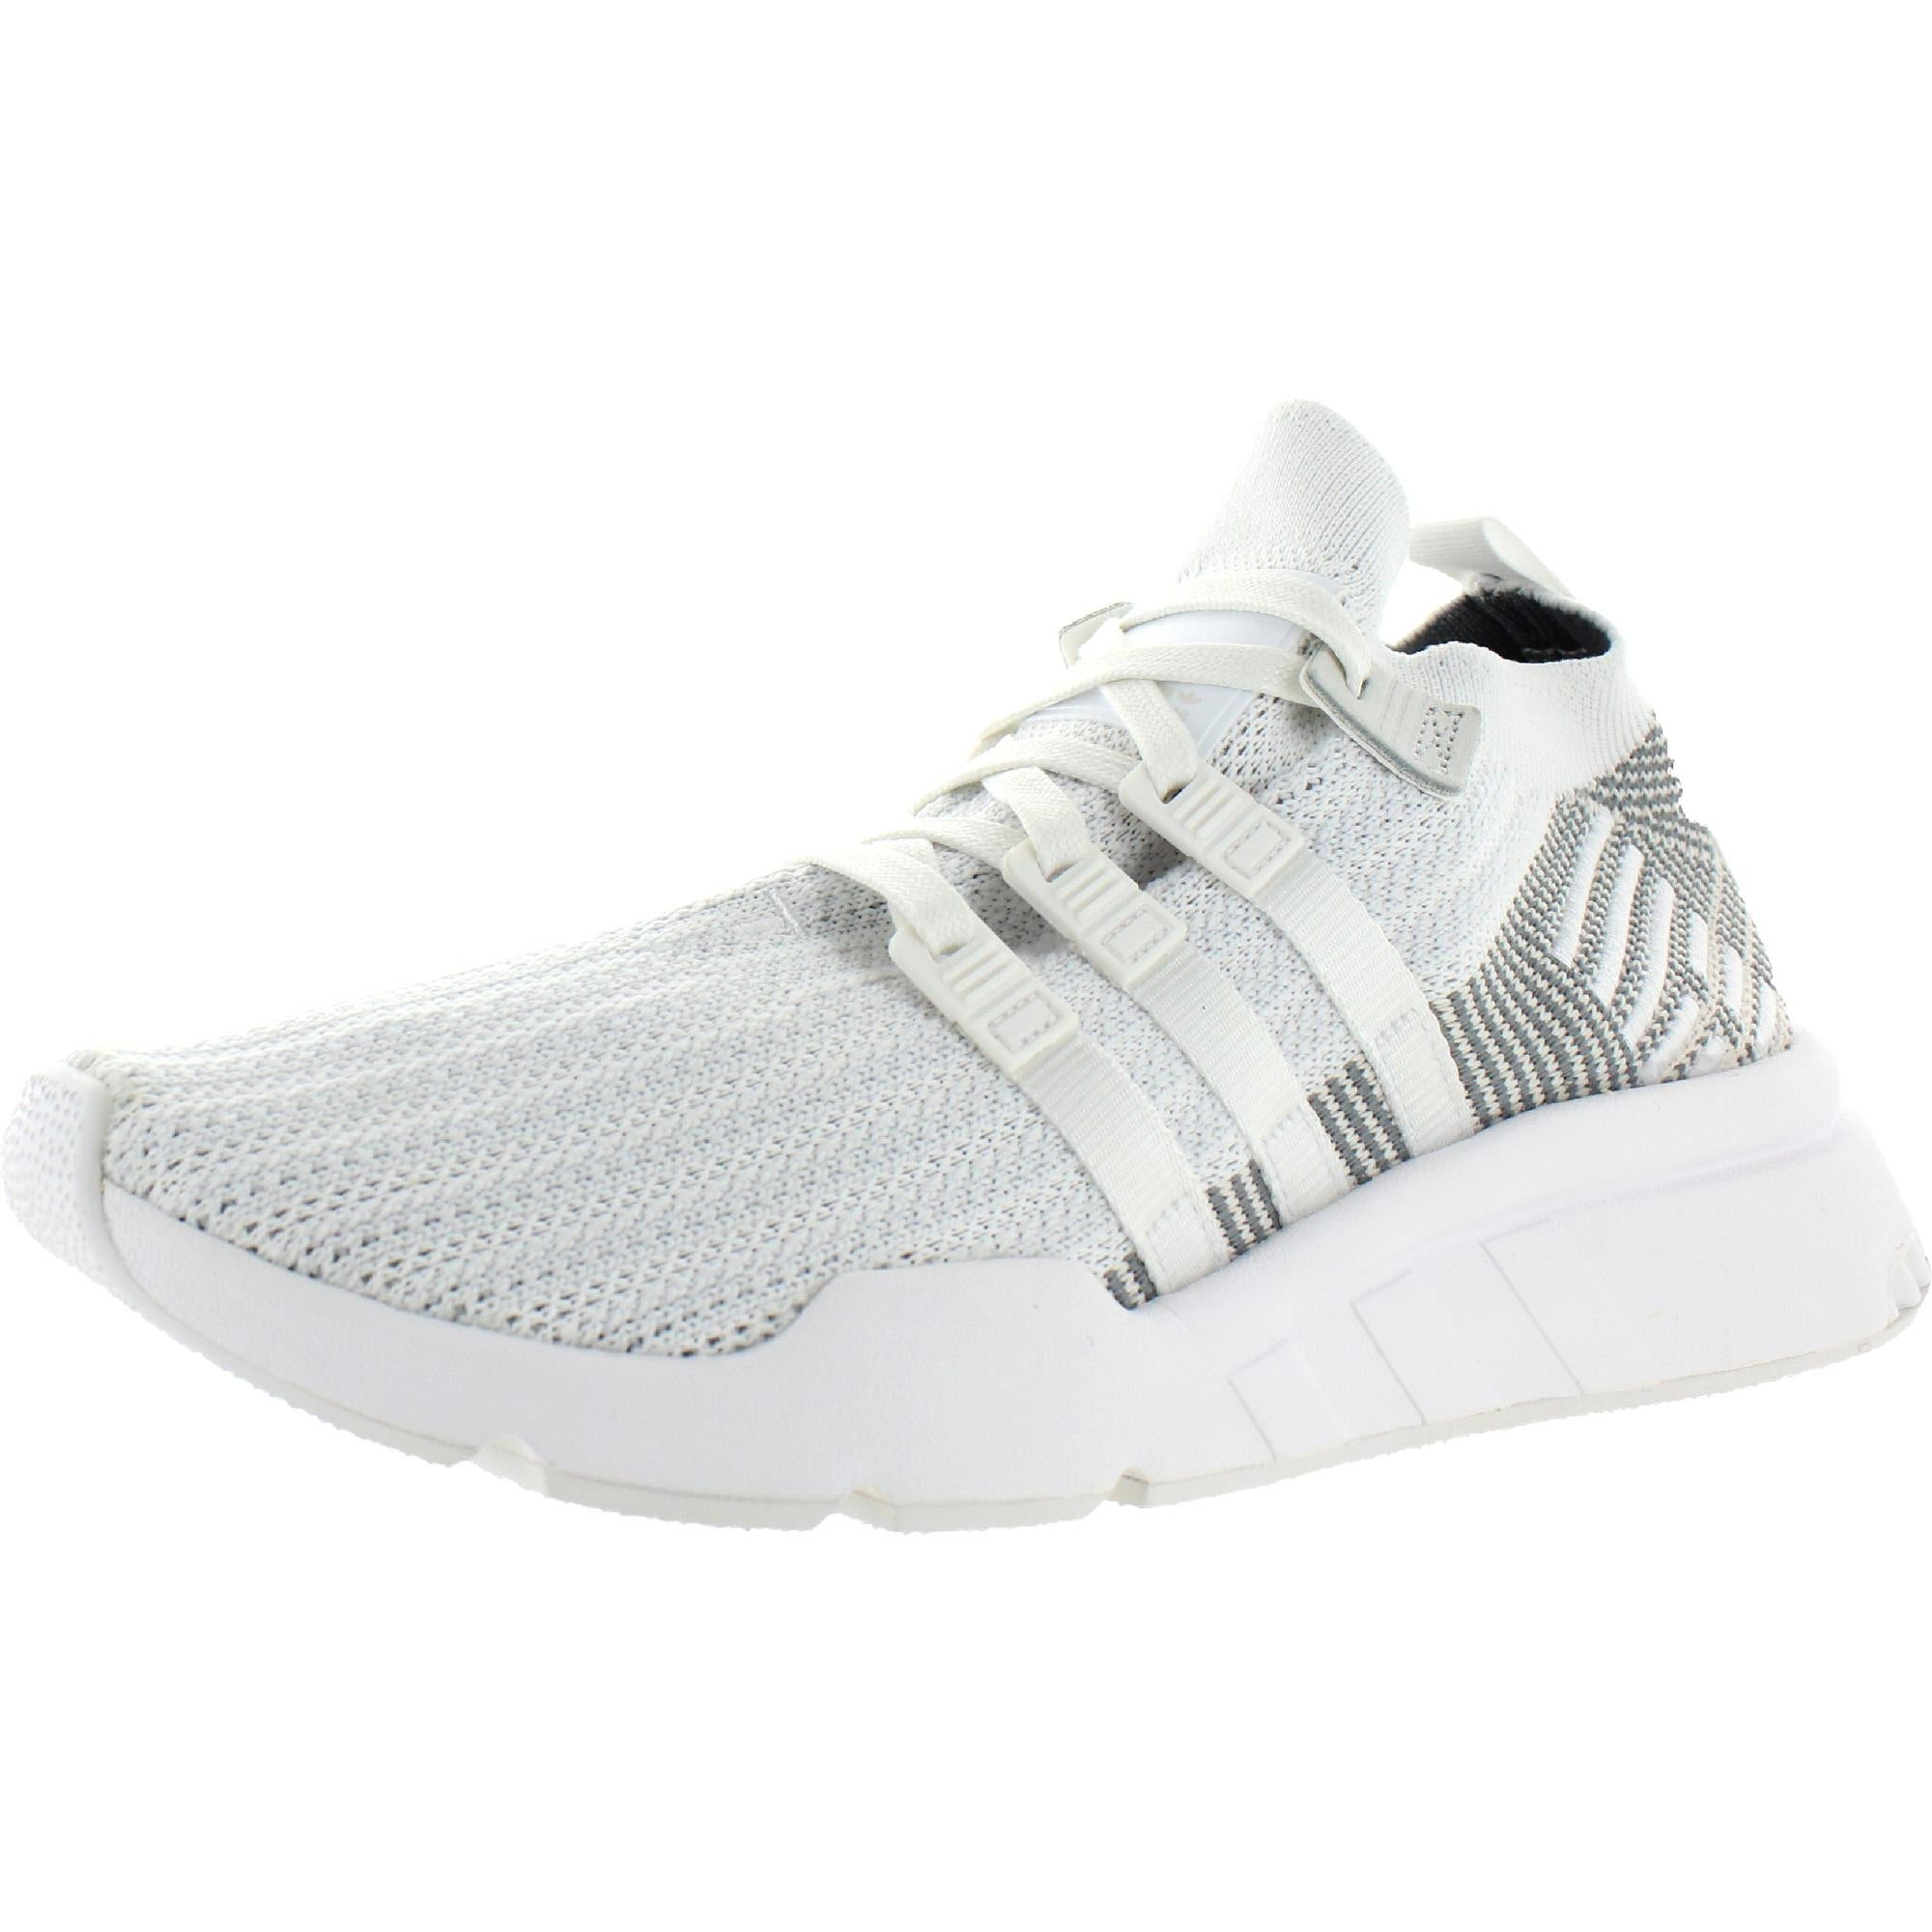 adidas Originals Mens EQT Support Mid ADV PK Athletic Shoes Ortholite Running - FTW White/FTW White/Grey